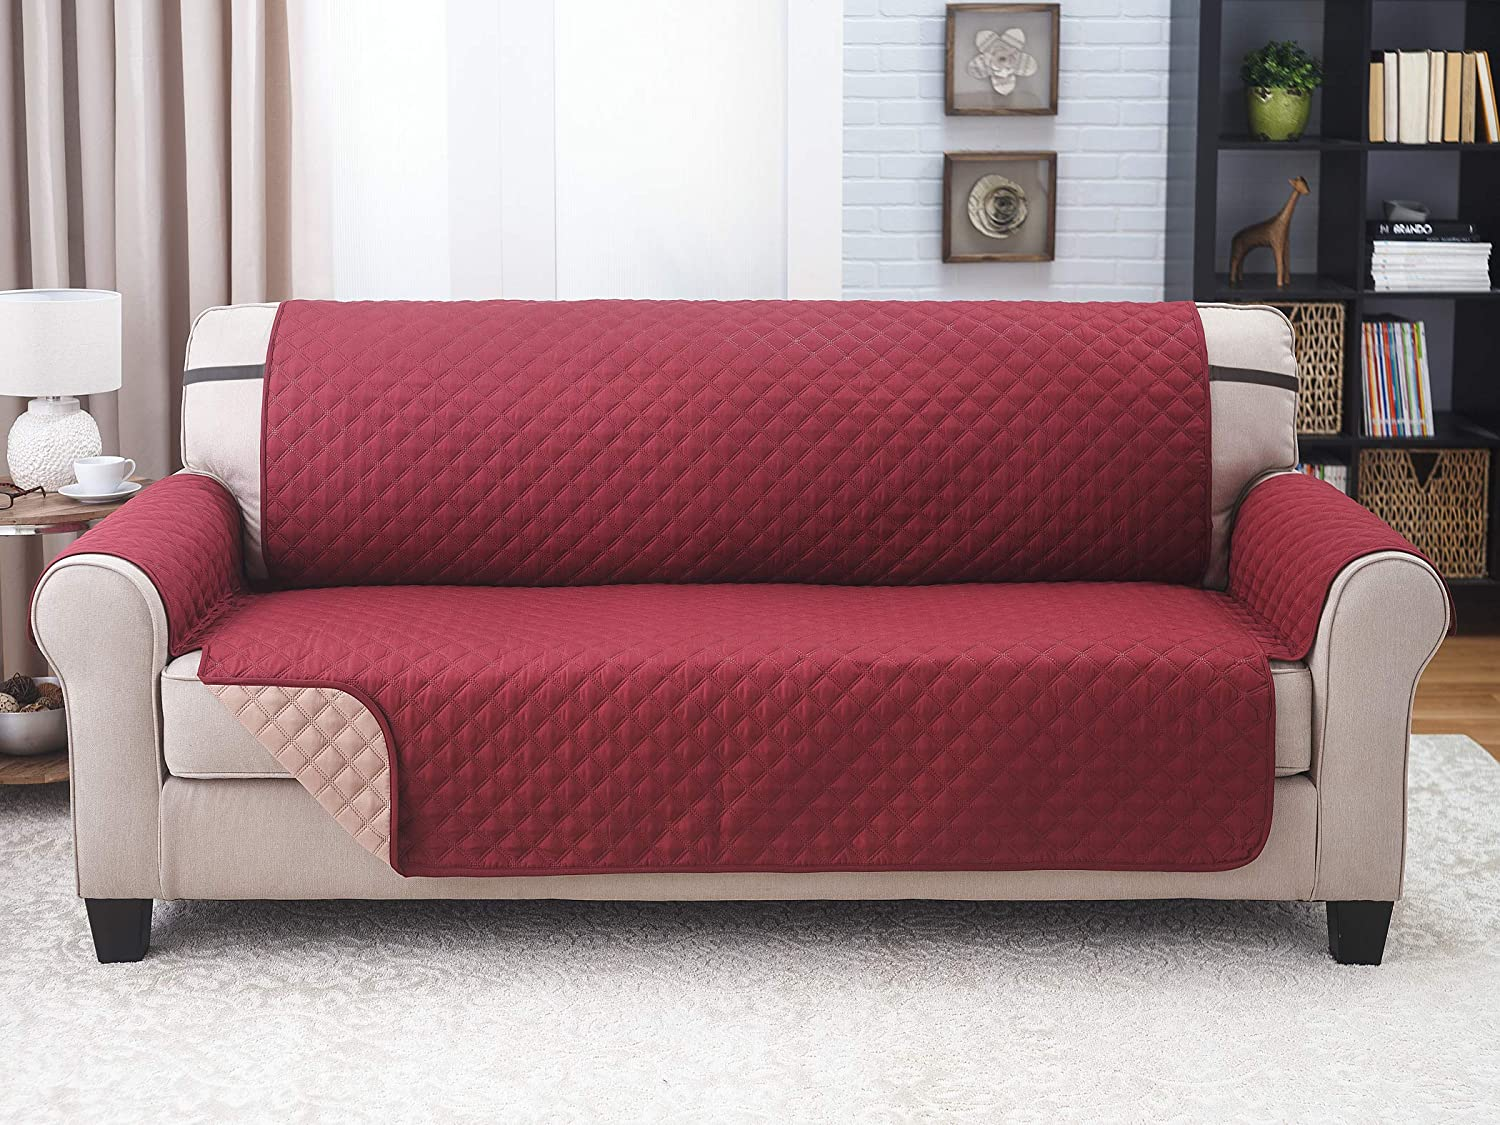 Couch Guard XL Sofa Cover, Slipcover, Furniture Protector. Shield & Protects from Dogs, Cats, Pets, Kids, Stains. Reversible, Quilted with Elastic Strap. Easy Wash & Dry. Wine & Mocha